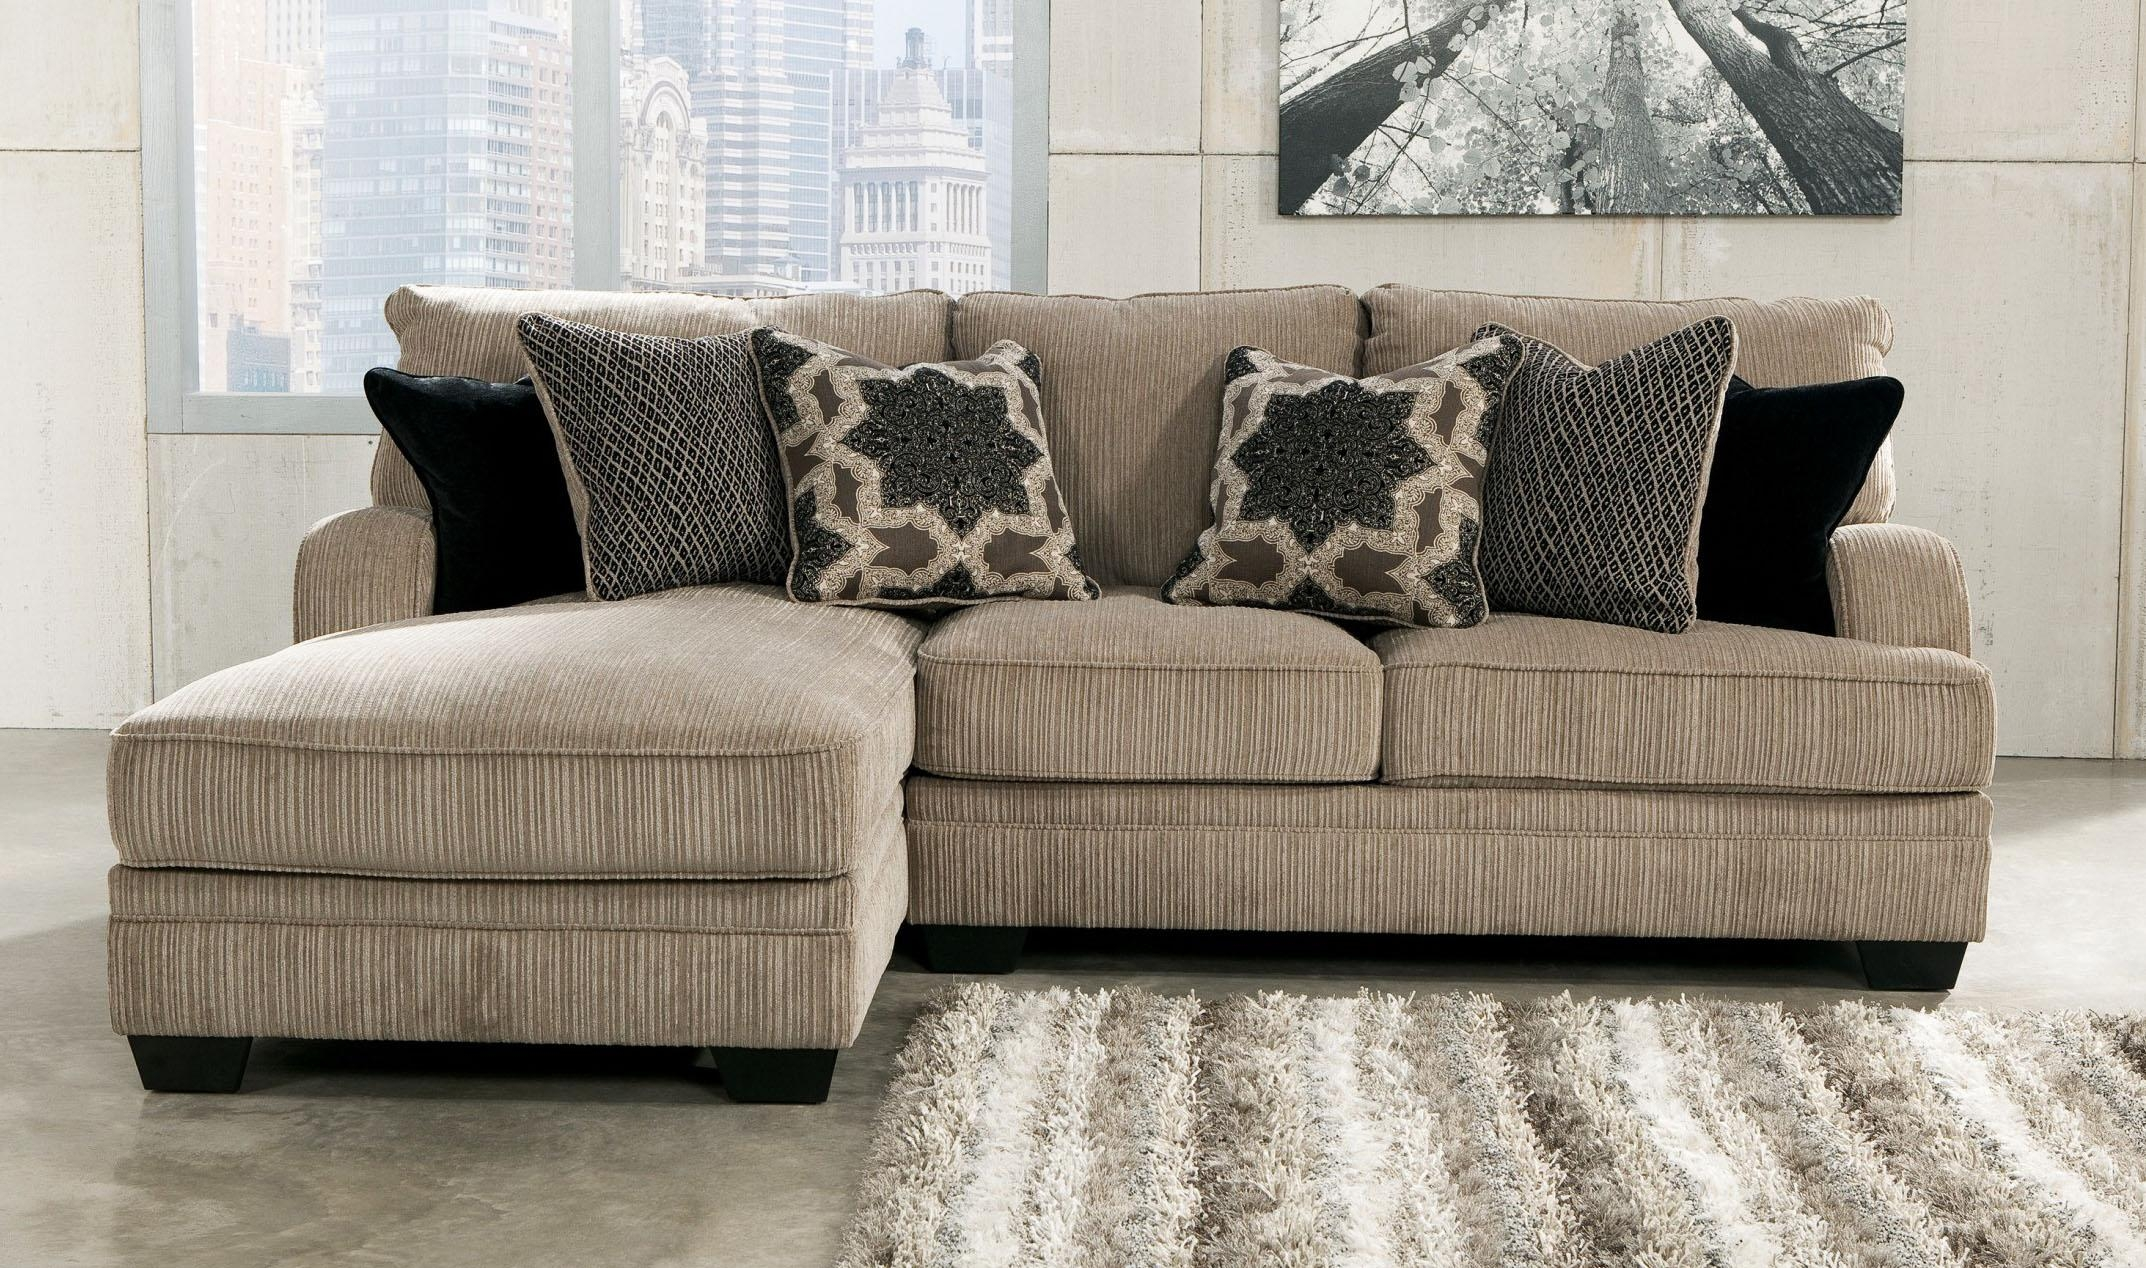 Contemporary Sectional Sofas For Small Spaces Charming Small Scale Within Small Scale Sofas (Image 2 of 20)